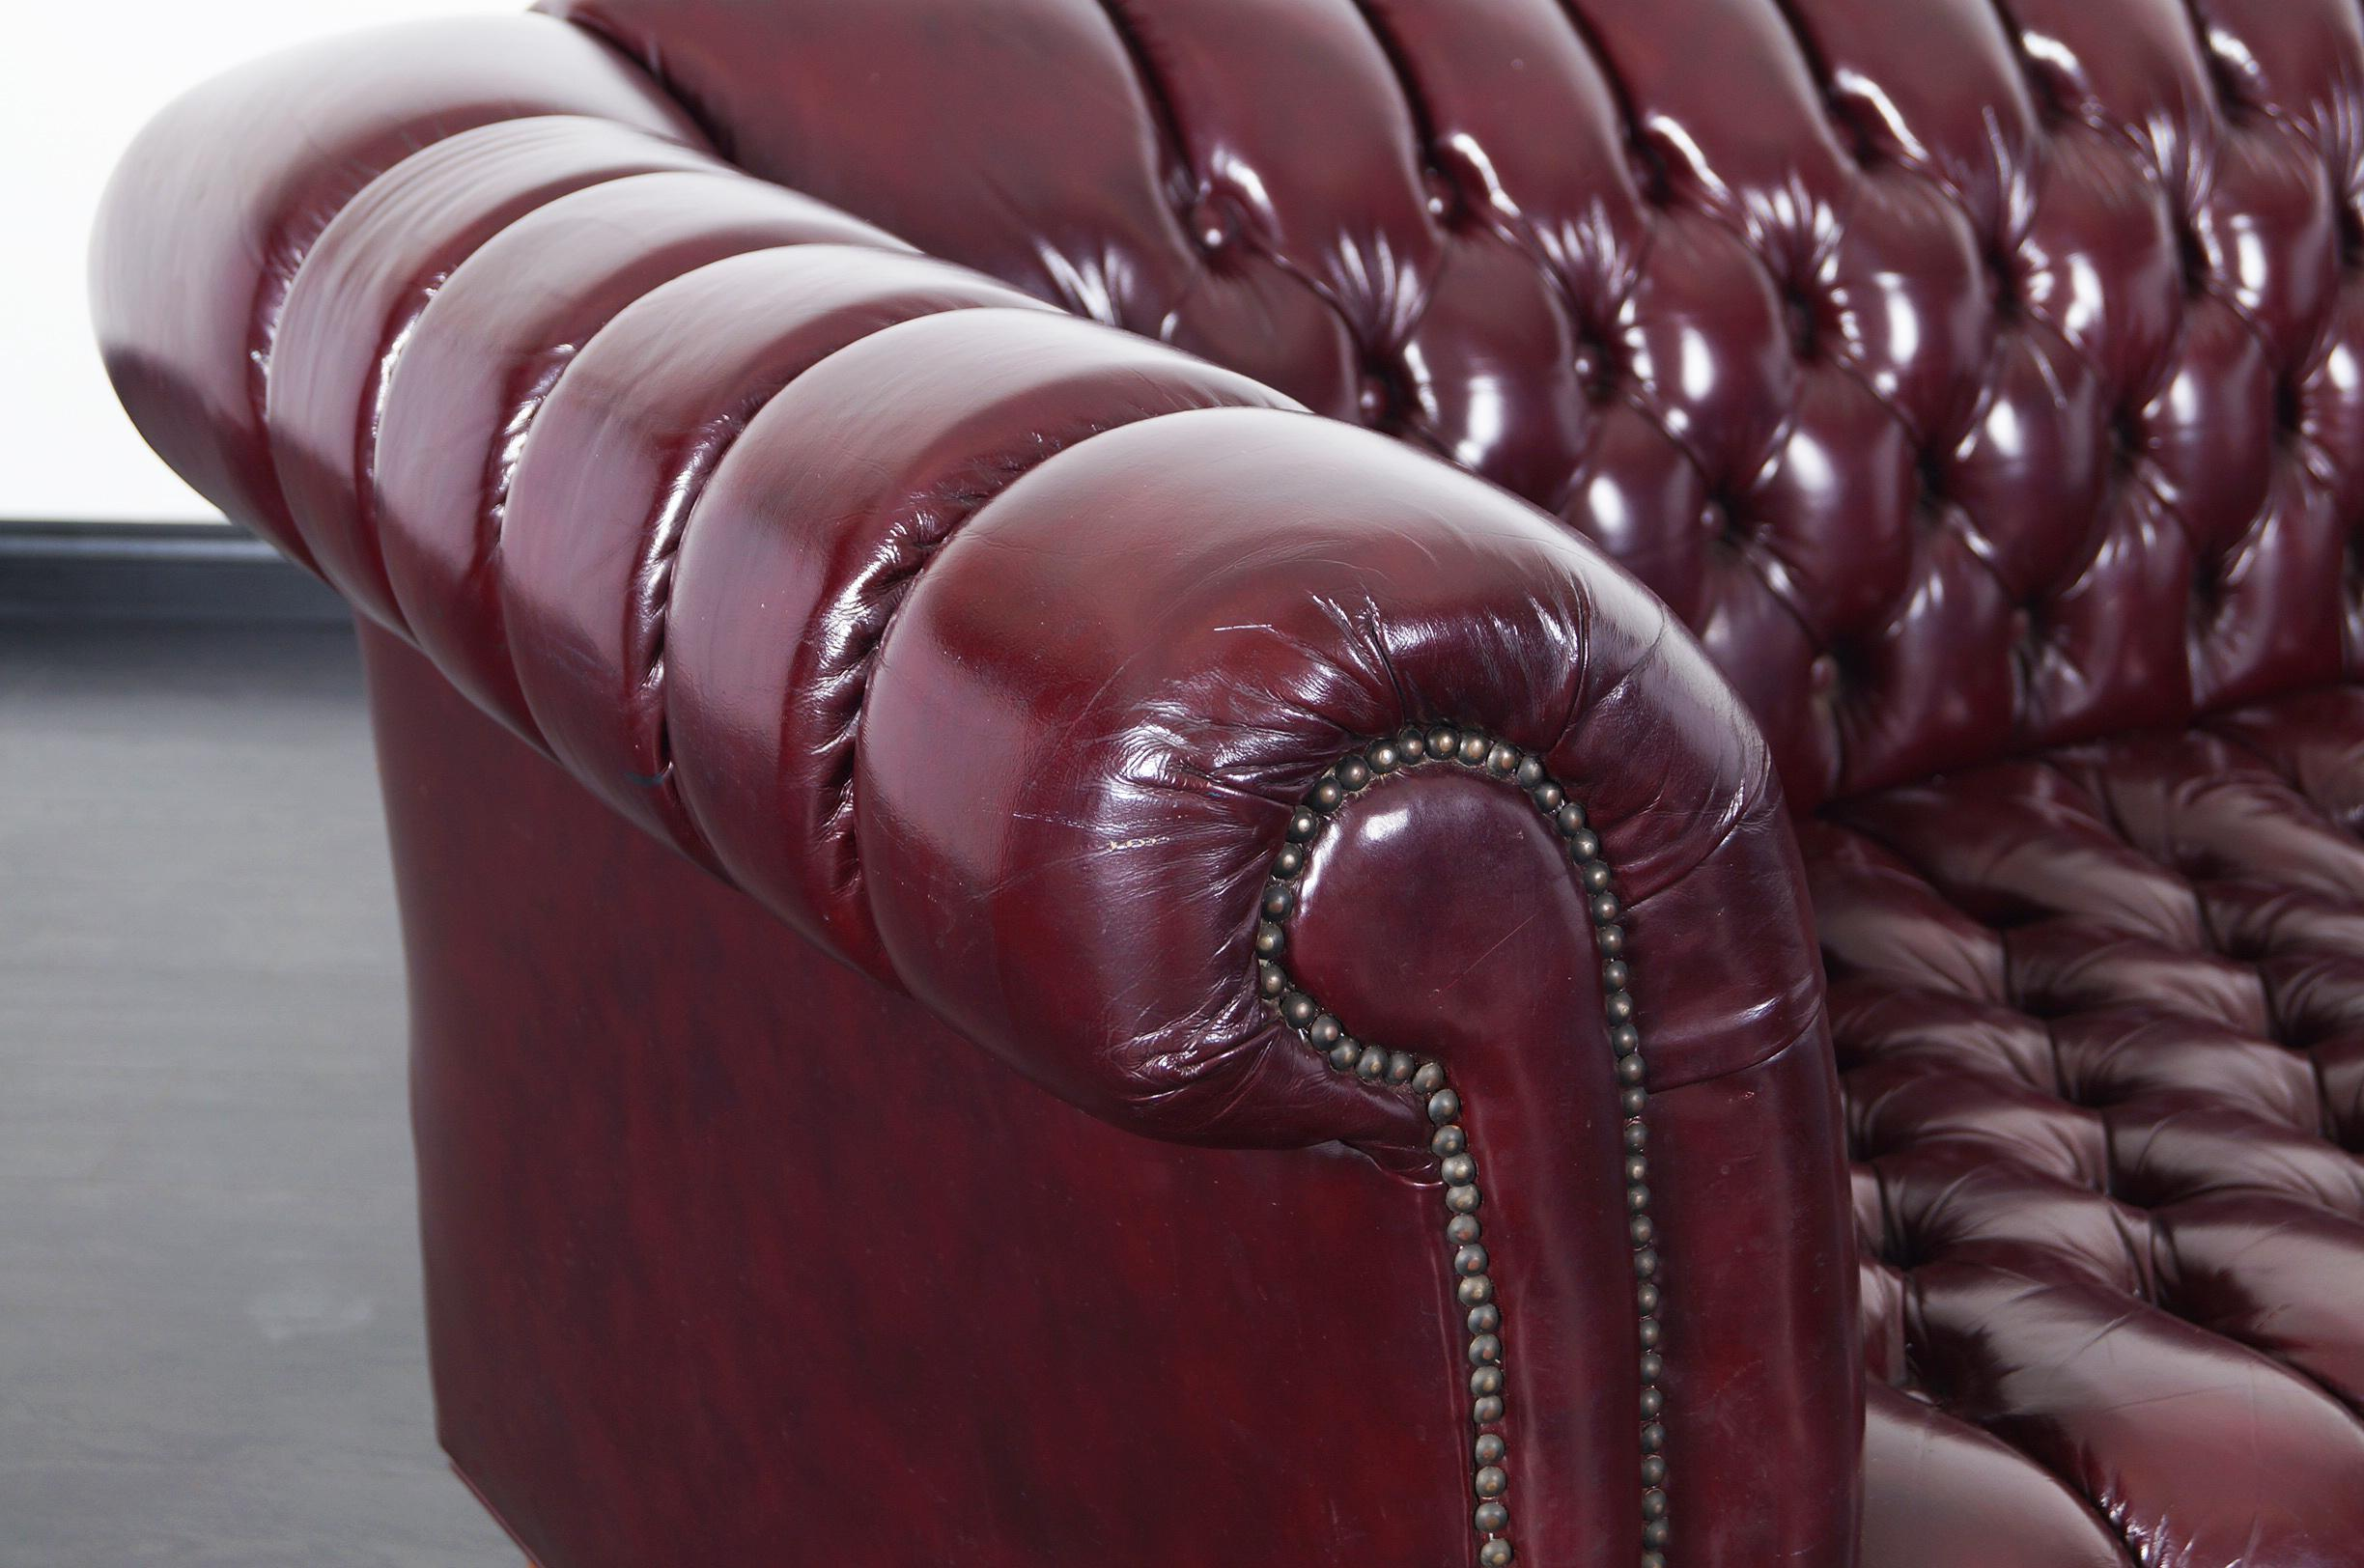 Ordinaire Danish Modern Vintage Burgundy Leather Chesterfield Sofa For Sale   Image 3  Of 6